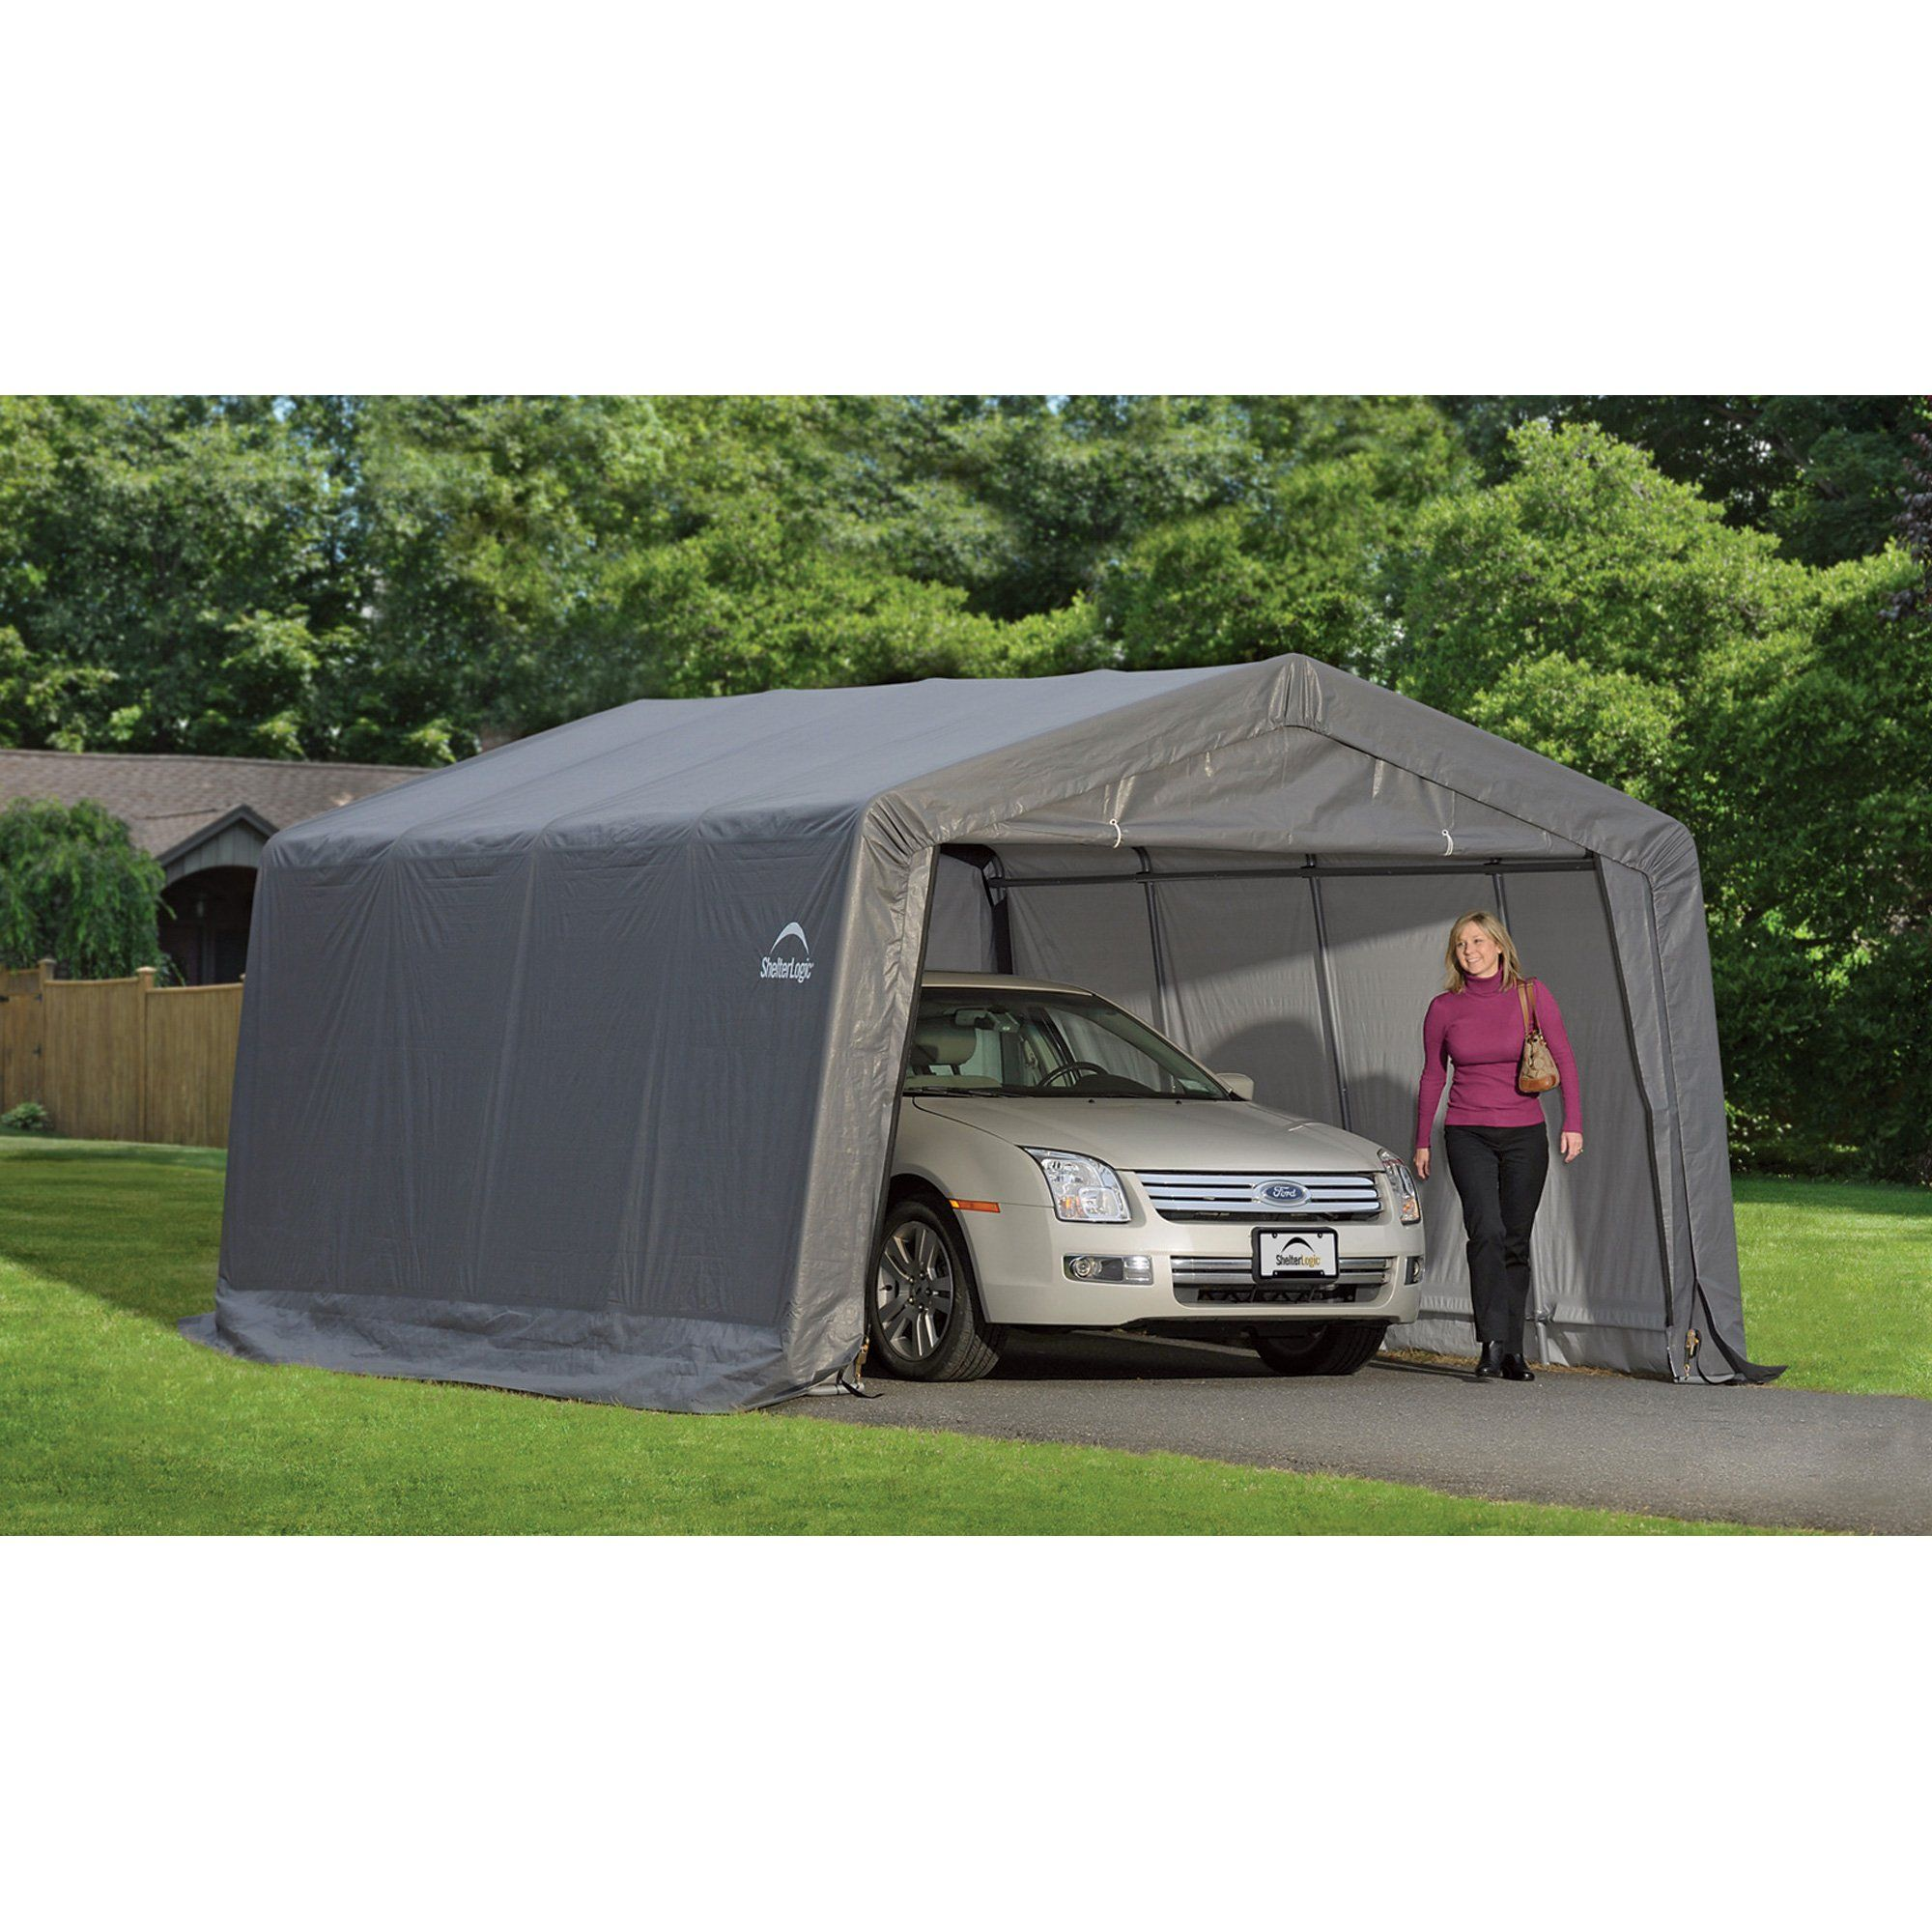 ShelterLogic Peak Style GarageinaBox Grey 12 x 16 x 8 ft